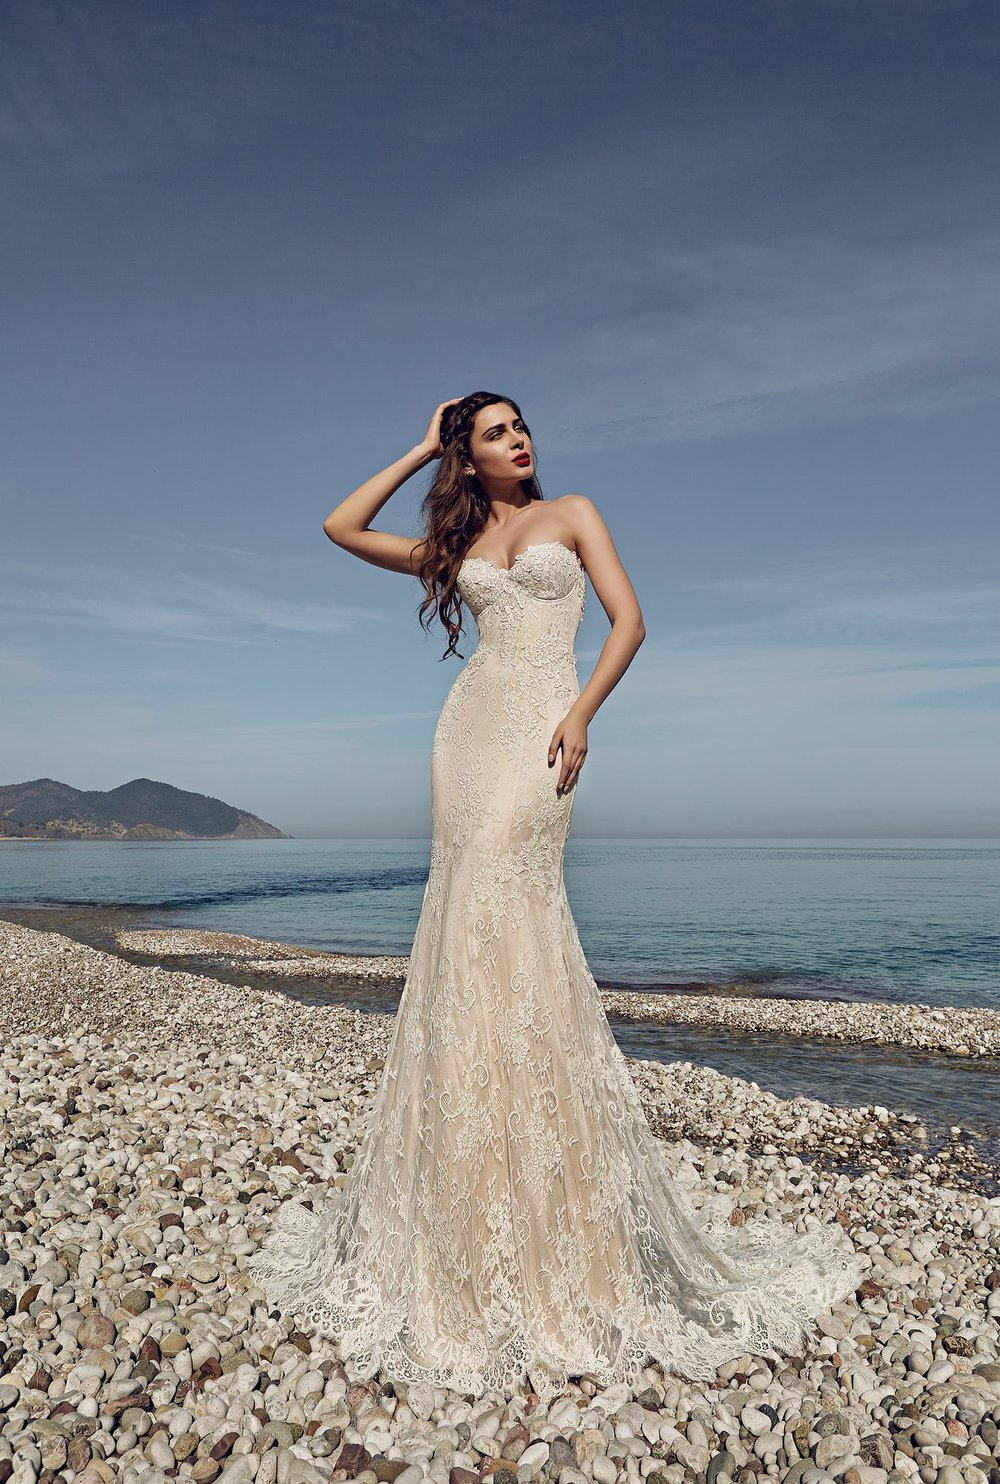 NEPHRITE wedding dress $900